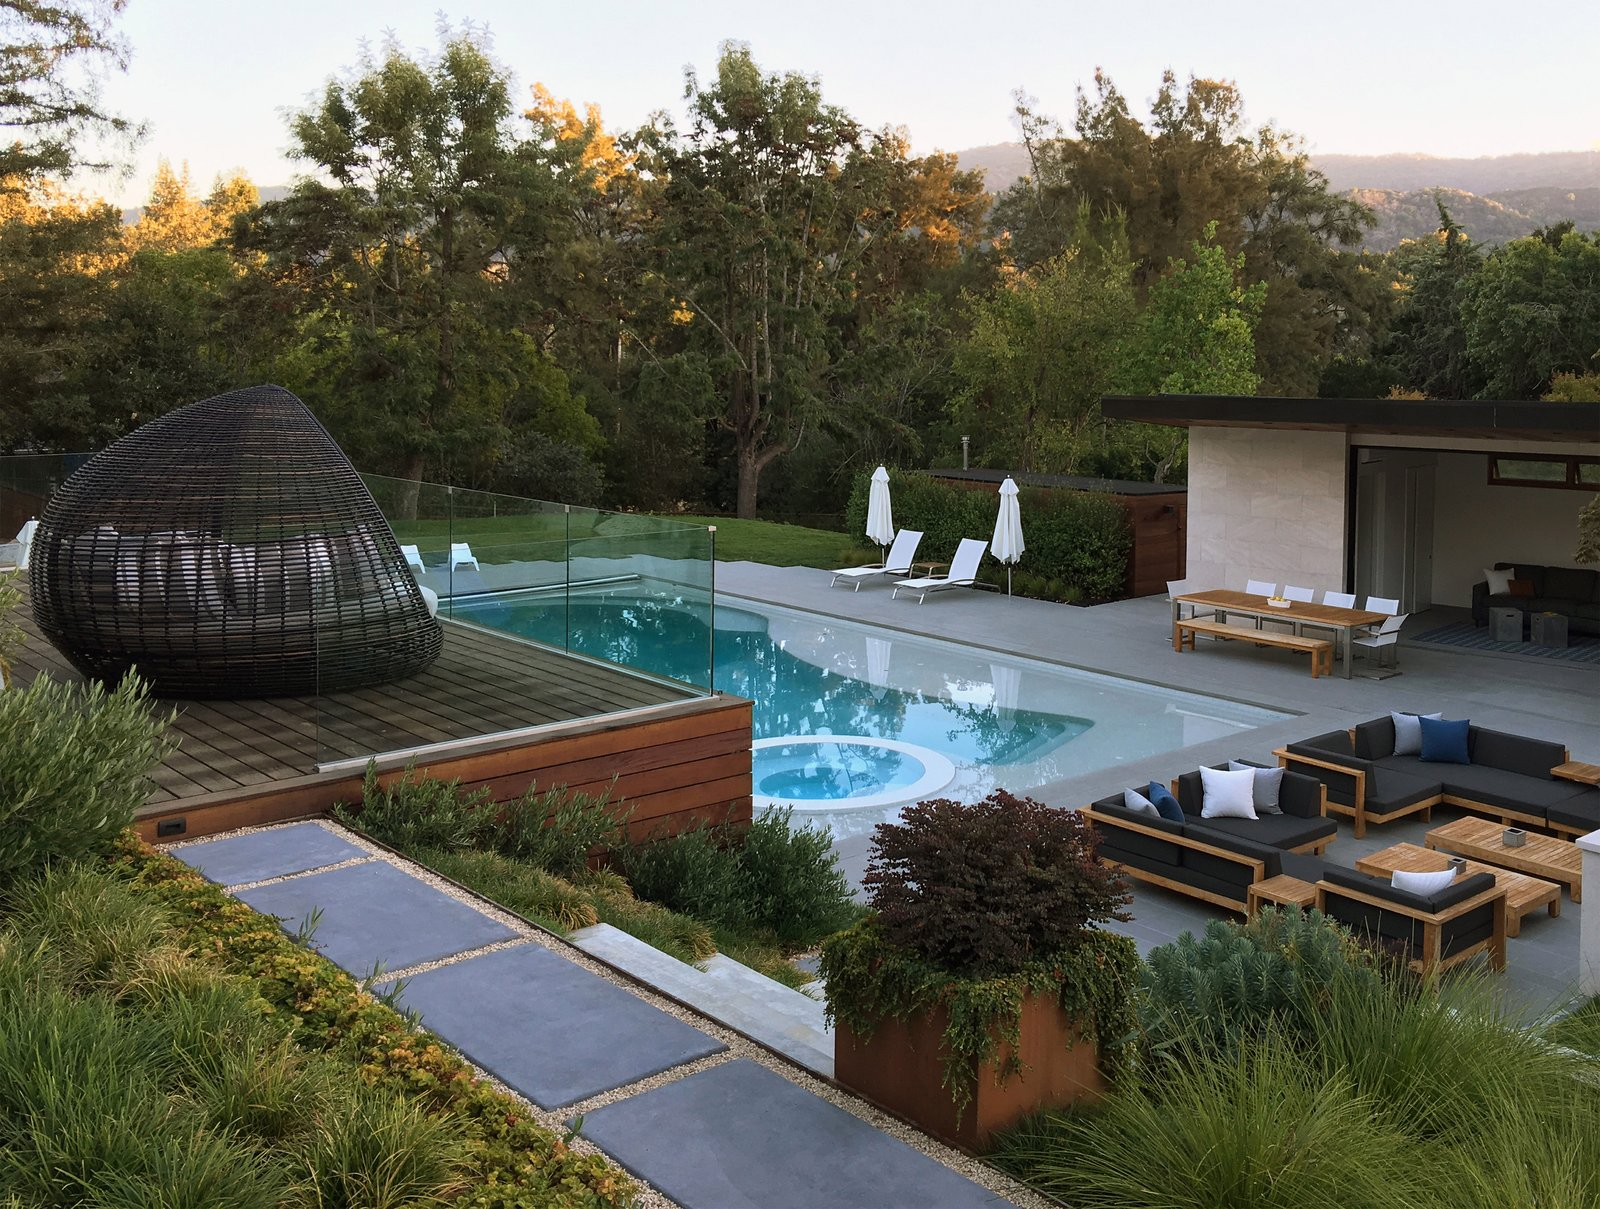 Terraced Decks to Pool & Pool House  Photo 8 of 12 in Take a Plunge Into These Enticing Modern Pools from Los Altos Hills Landscape